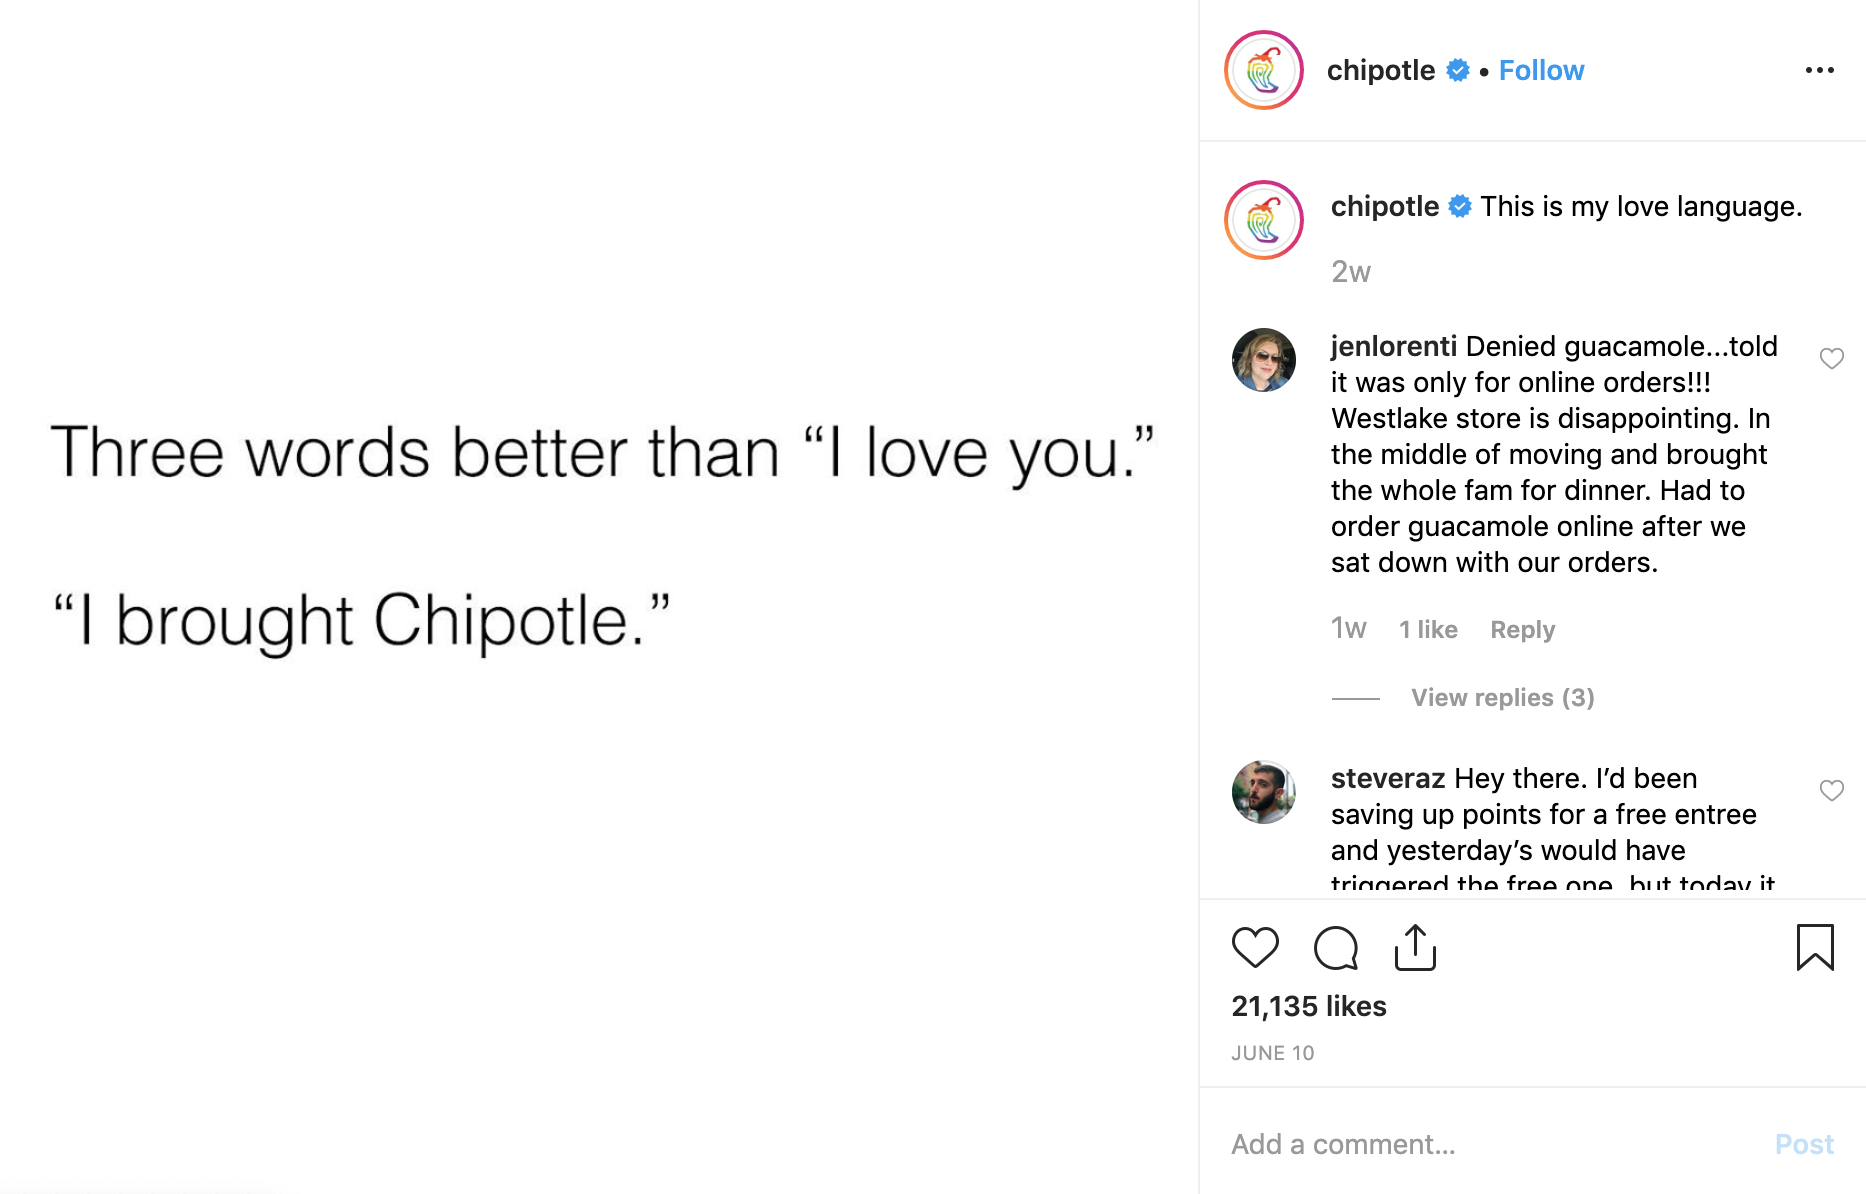 Chipotle on Instagram - best brands to follow